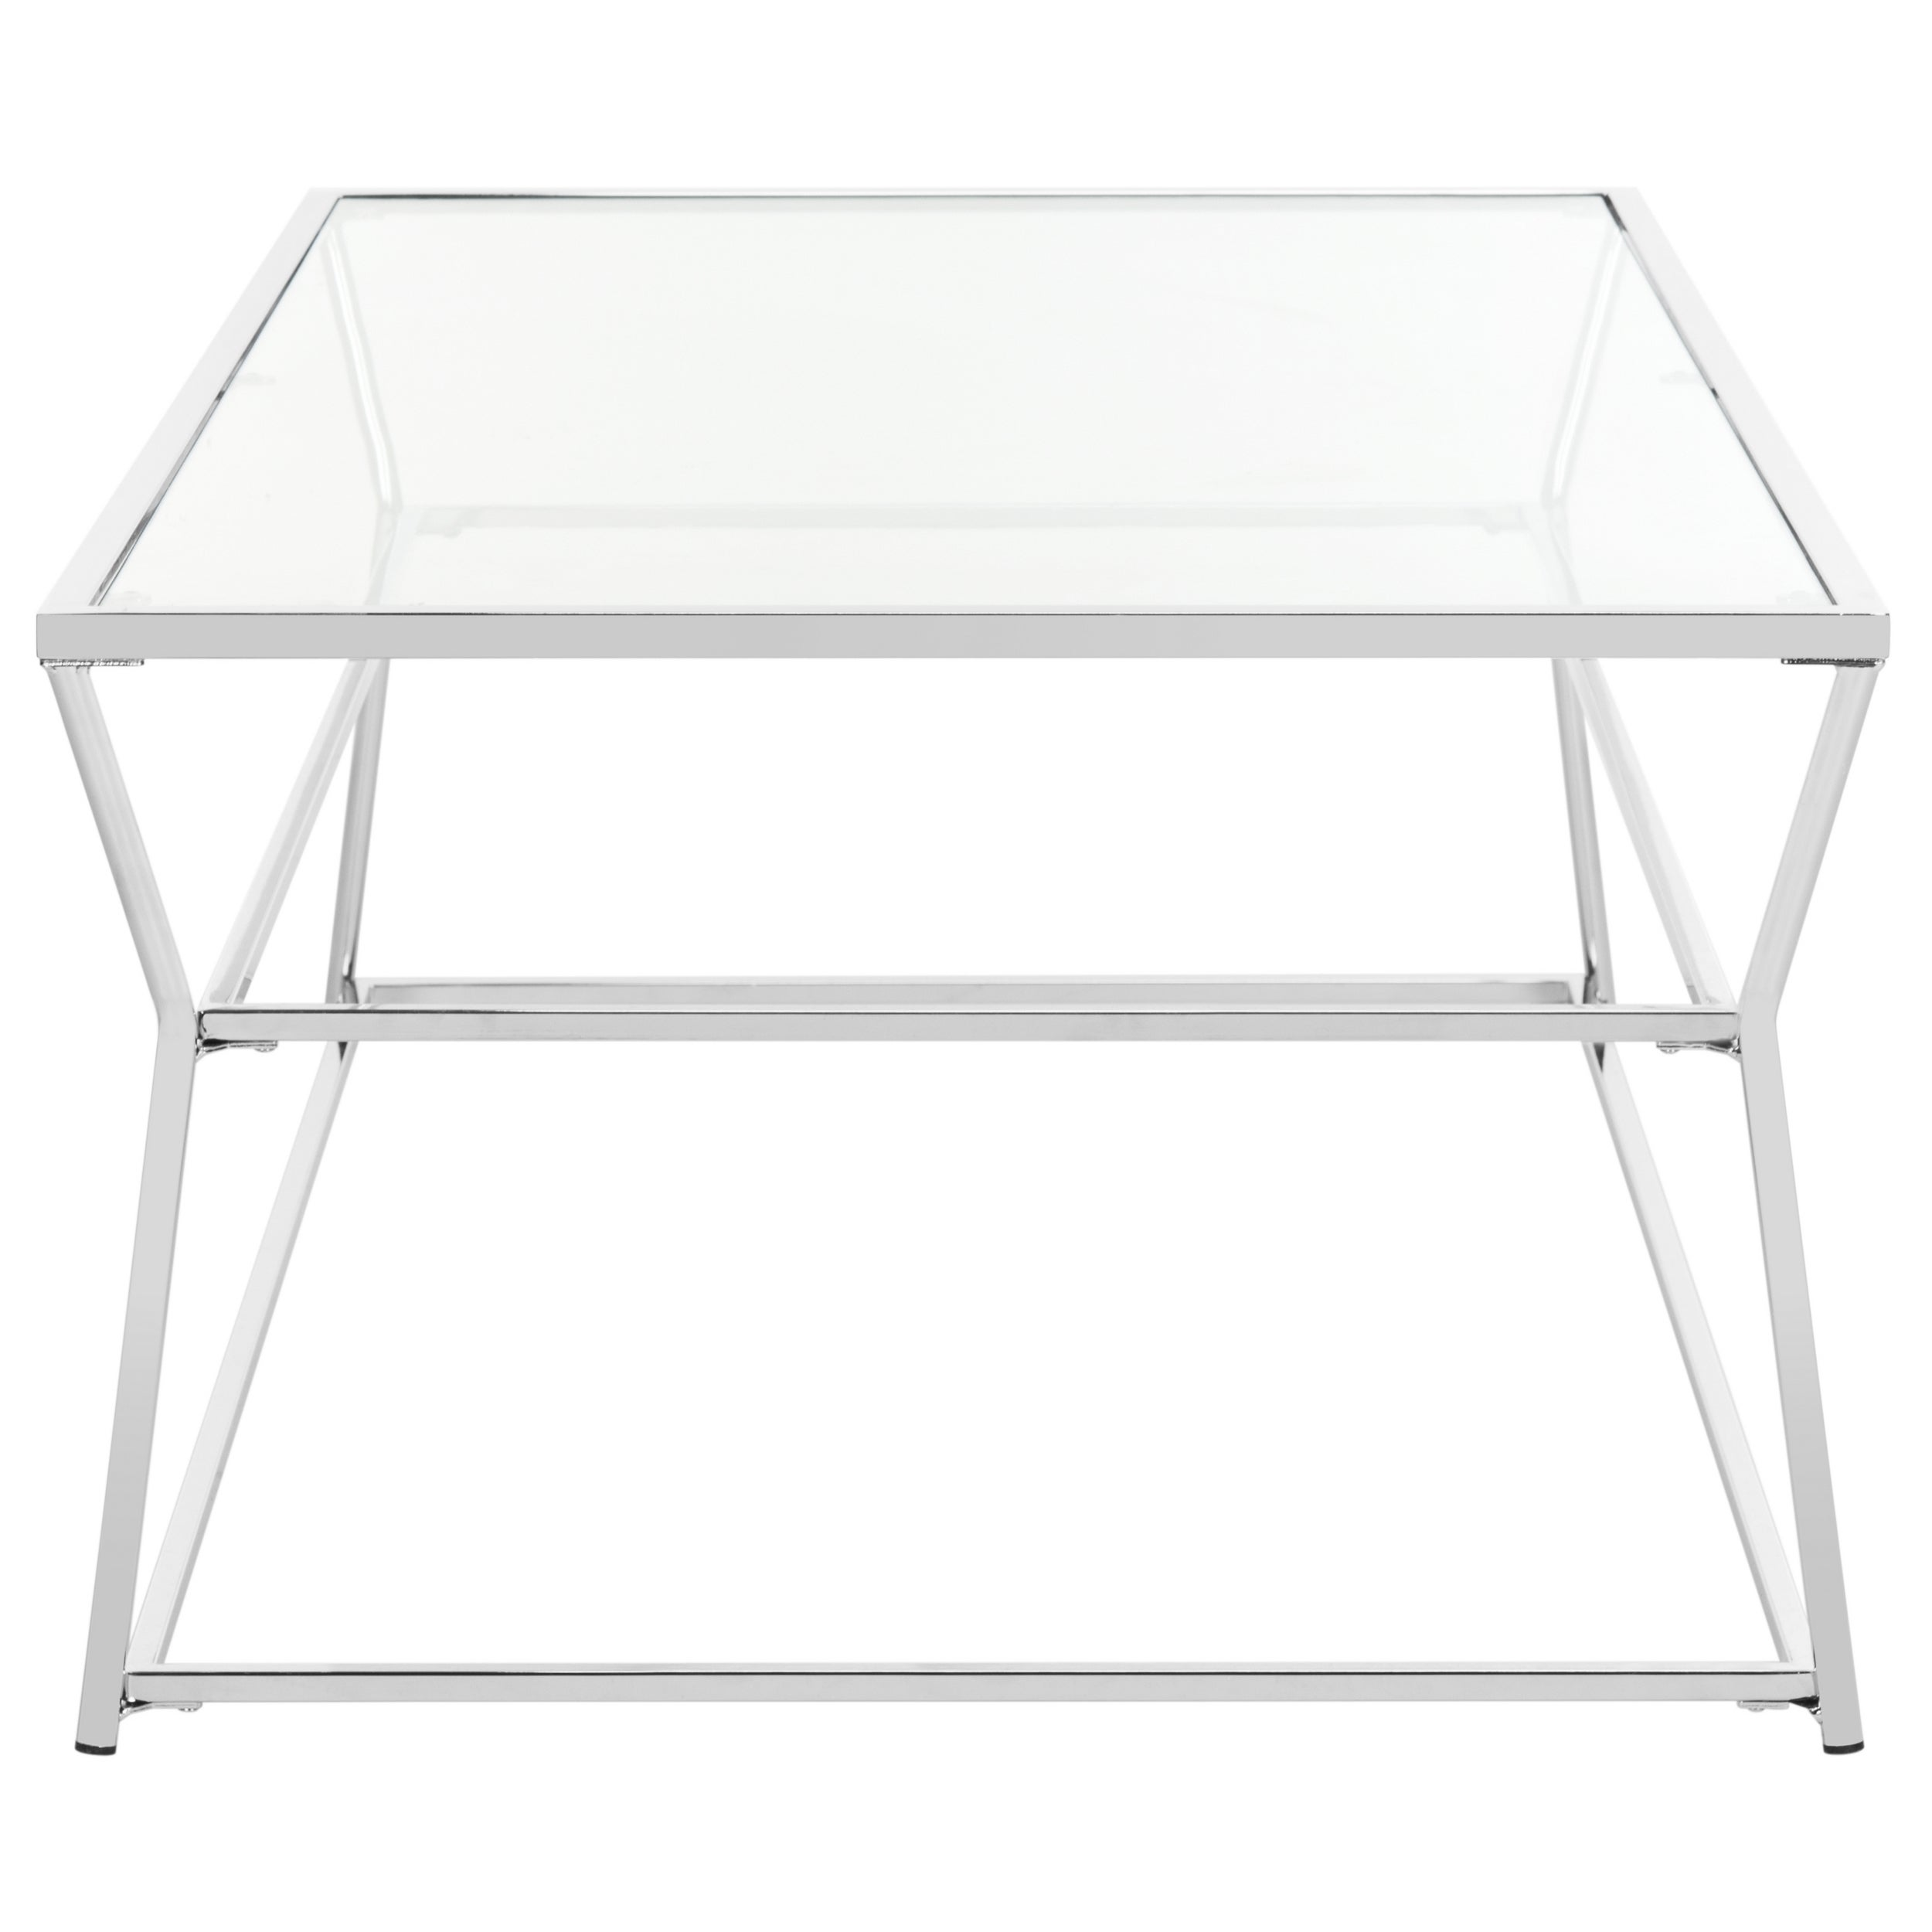 Safavieh Ellie Glass Chrome Coffee Table   Free Shipping Today   Overstock    21131464